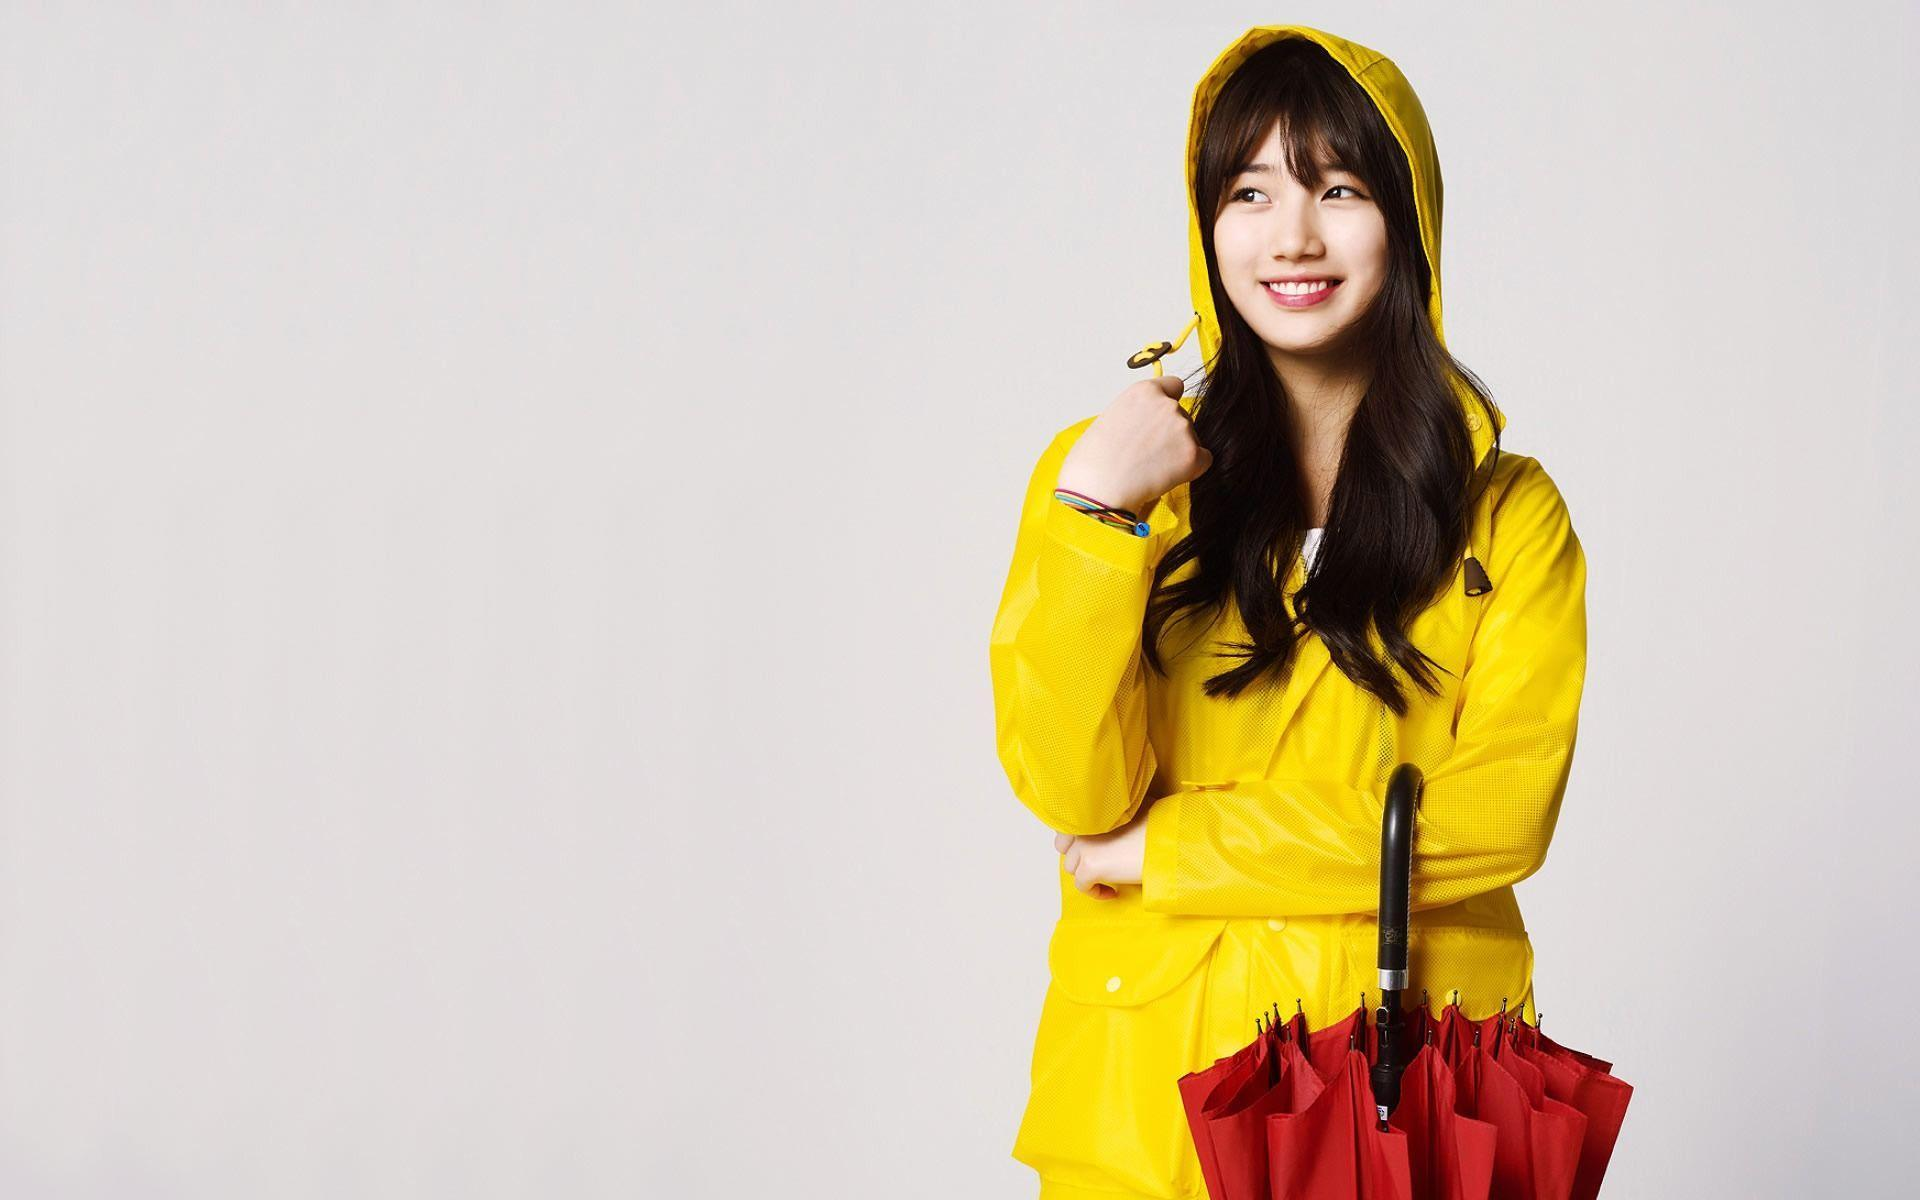 Suzy Computer Wallpapers, Desktop Backgrounds | 1920x1200 | ID:465095